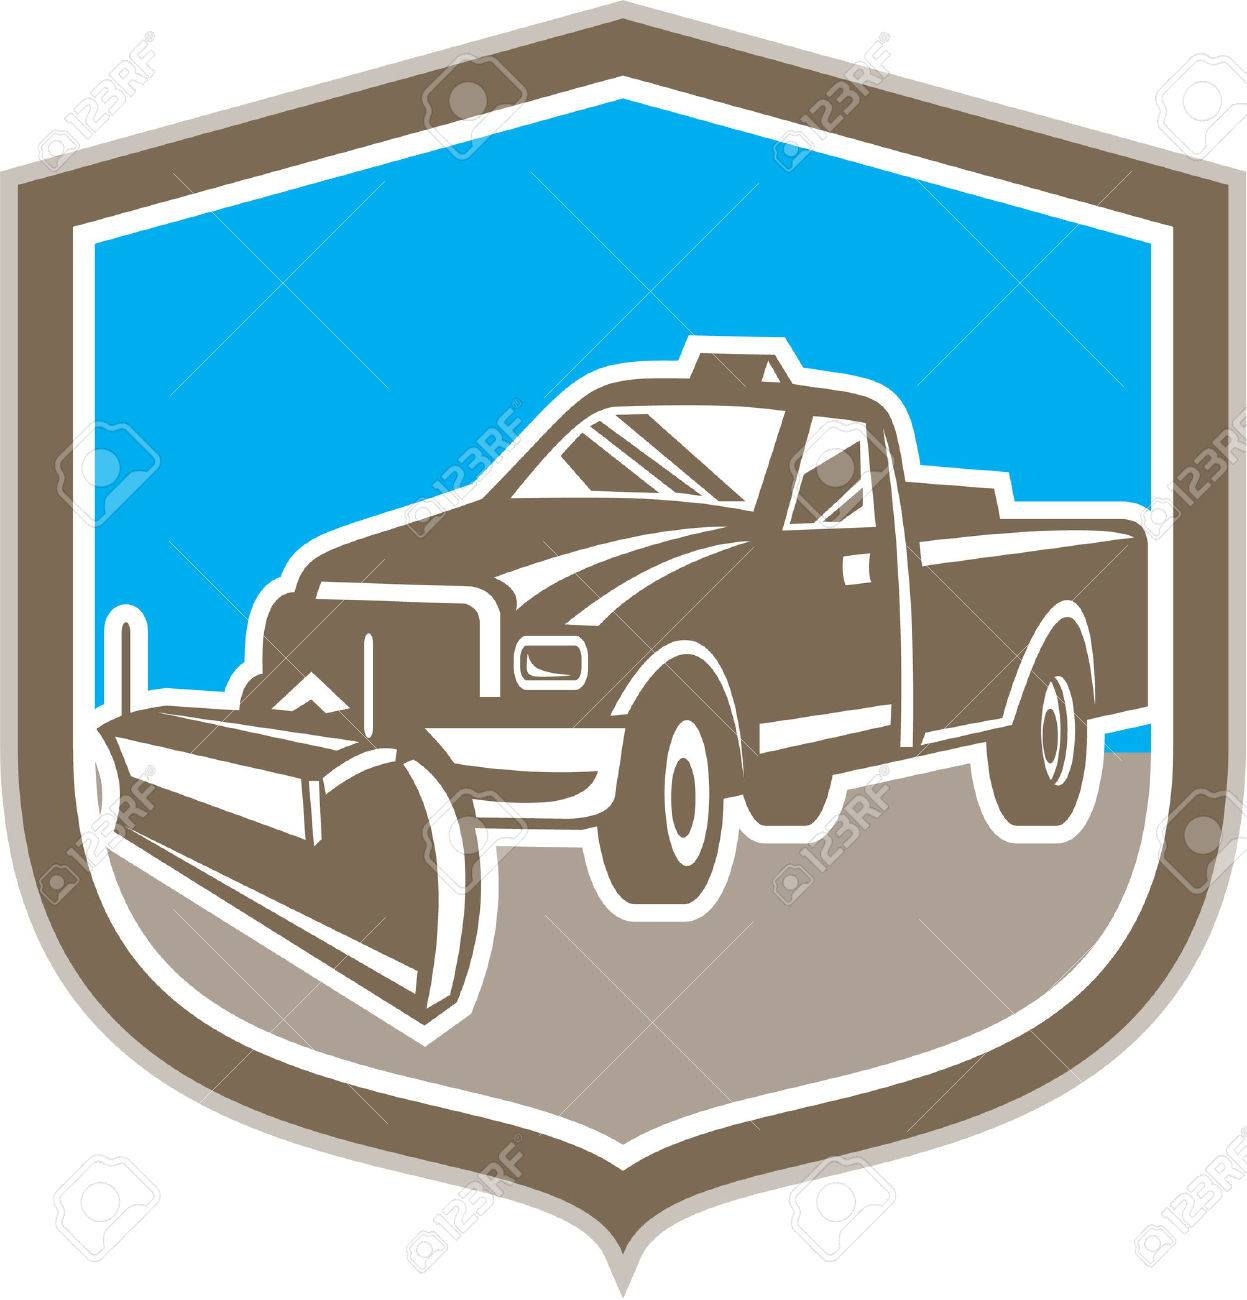 Illustration of a snow plow truck set inside shield on isolated background done in retro style. - 30638516